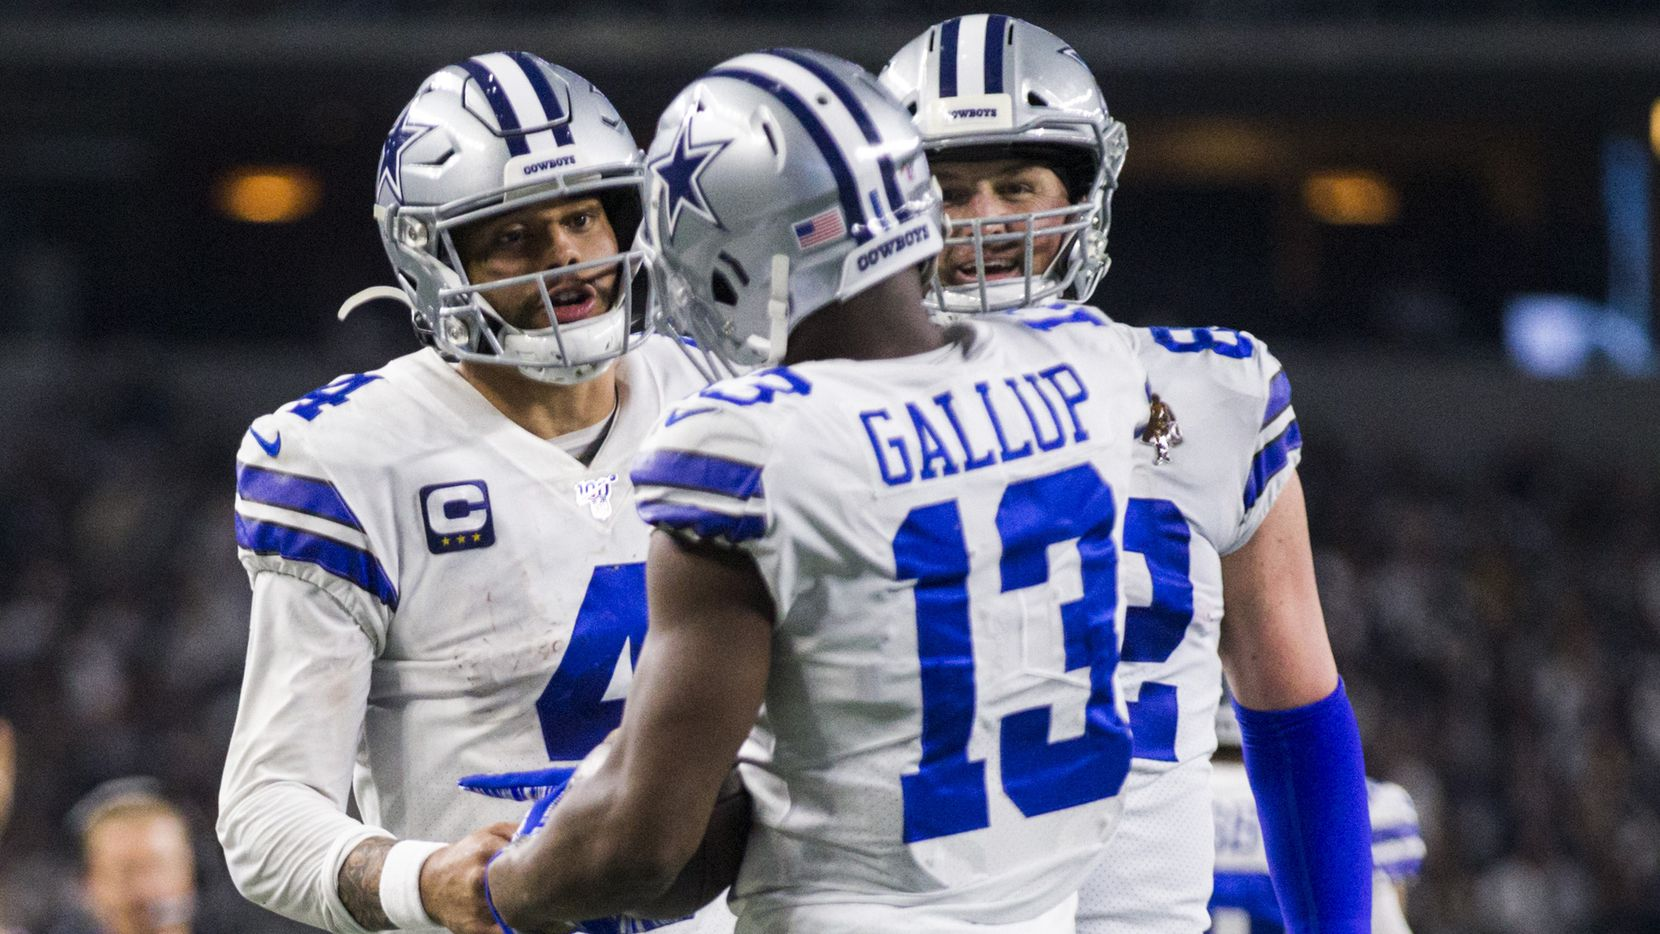 Dallas Cowboys wide receiver Michael Gallup (13) celebrates a touchdown with quarterback Dak Prescott (4) and tight end Jason Witten (82) during the fourth quarter of an NFL game between the Dallas Cowboys and the Washington Redskins on Sunday, December 29, 2019 at AT&T Stadium in Arlington, Texas.